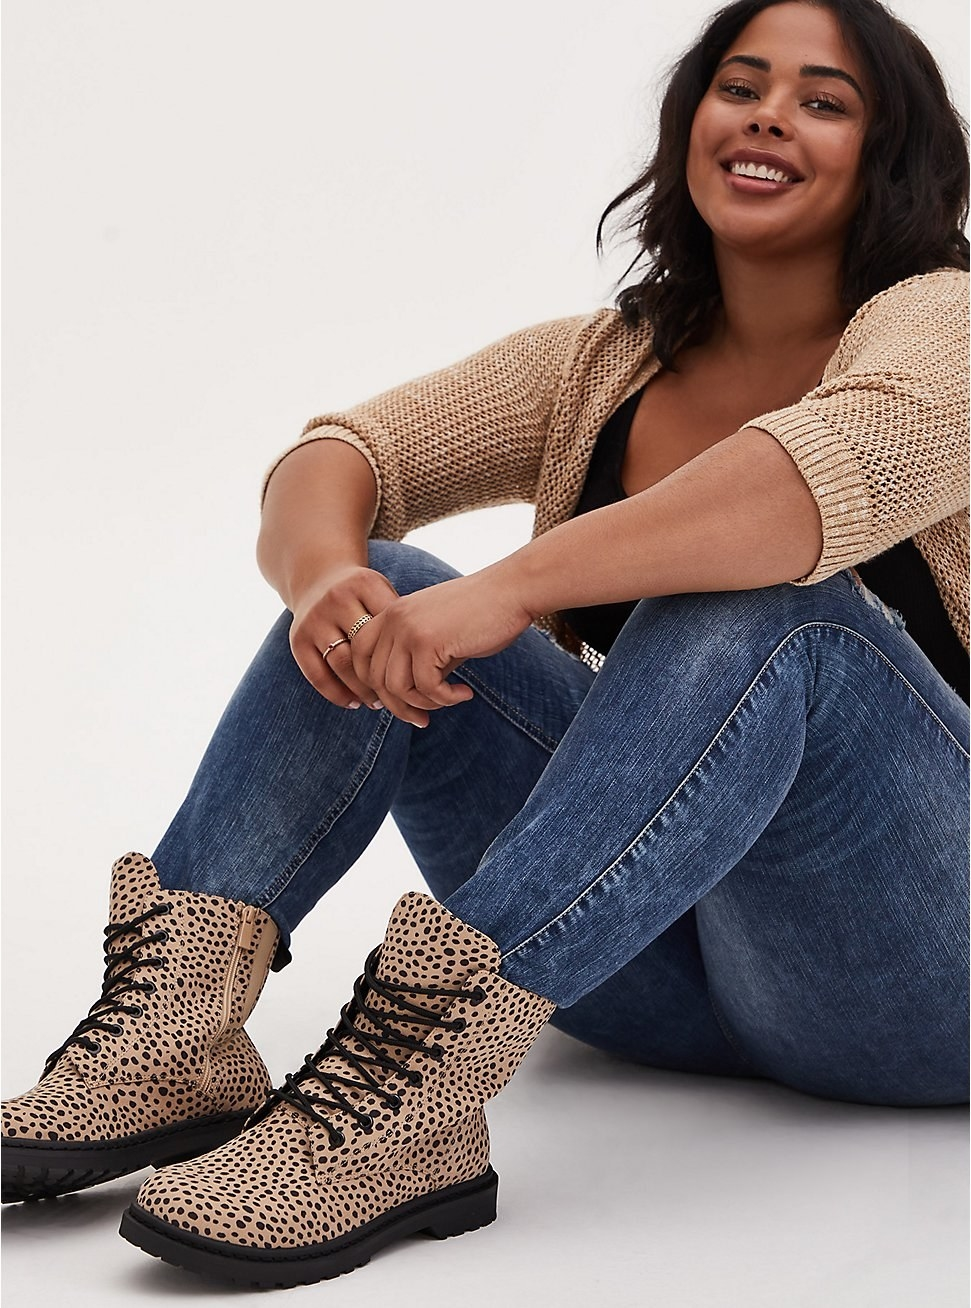 model wearing the leopard print ankle lace up boots